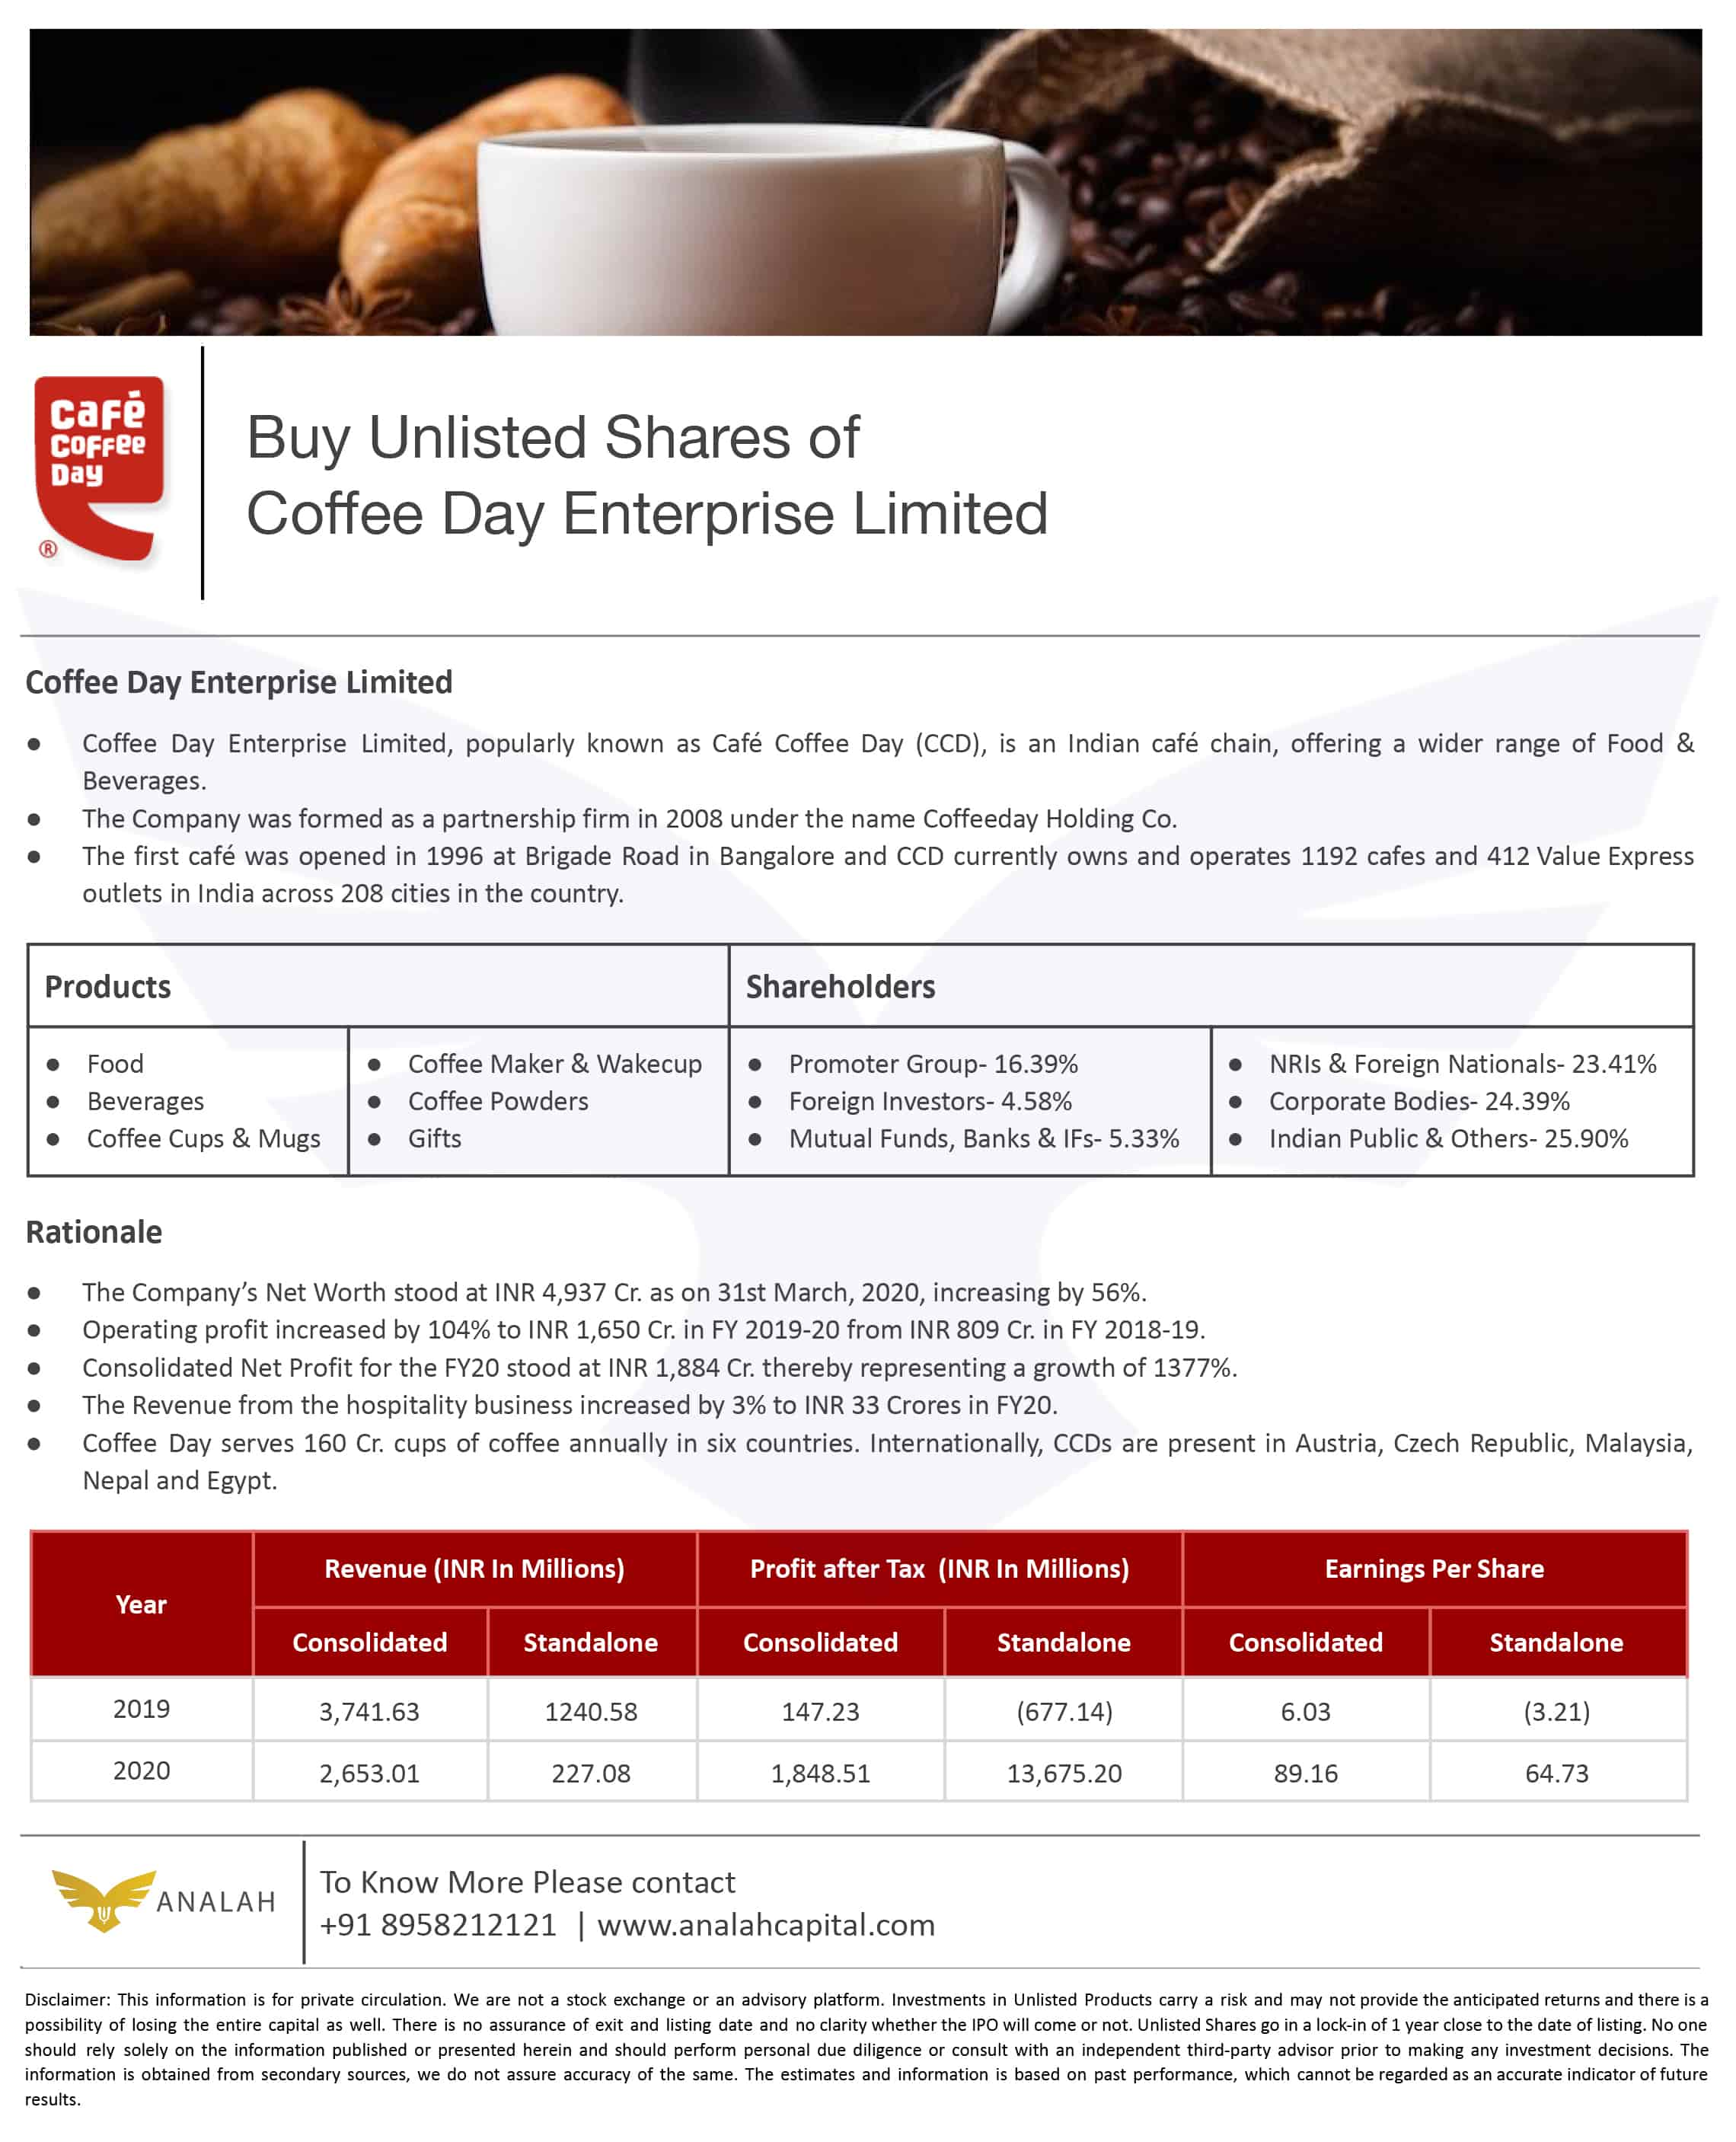 Caffe Coffee Day Enterprise Unlisted Shares